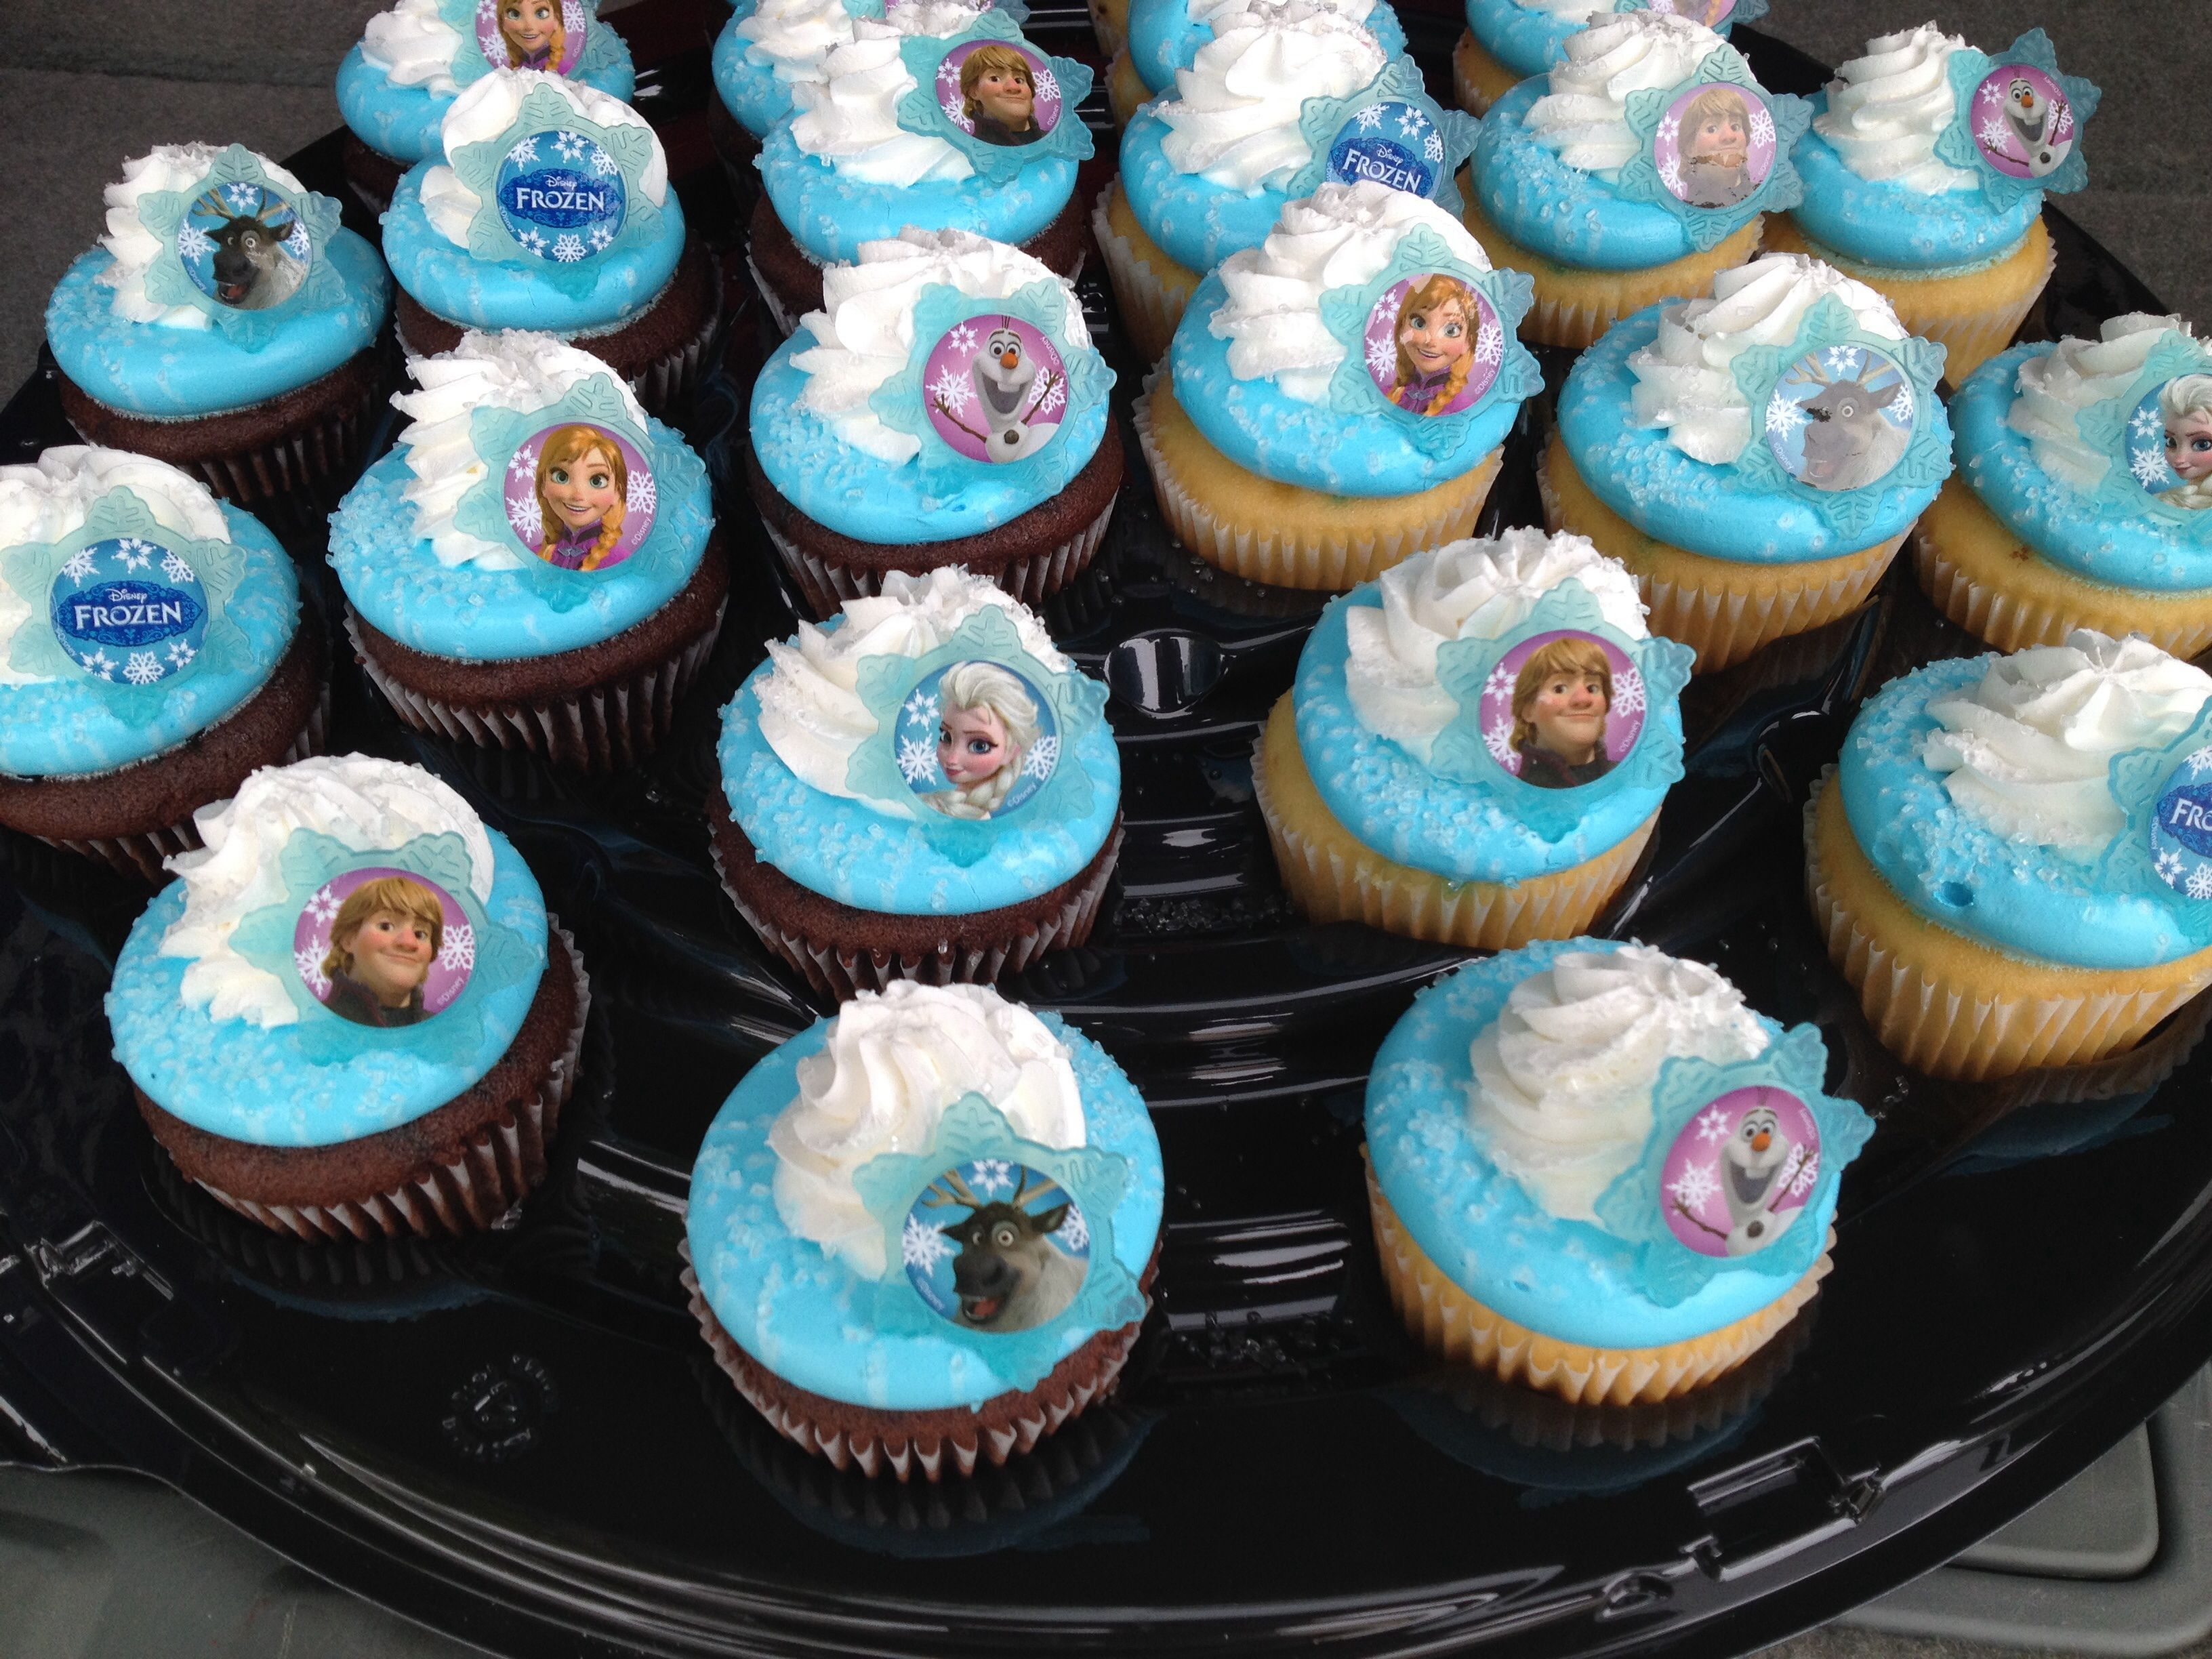 Disney Frozen Cupcakes From Walmart